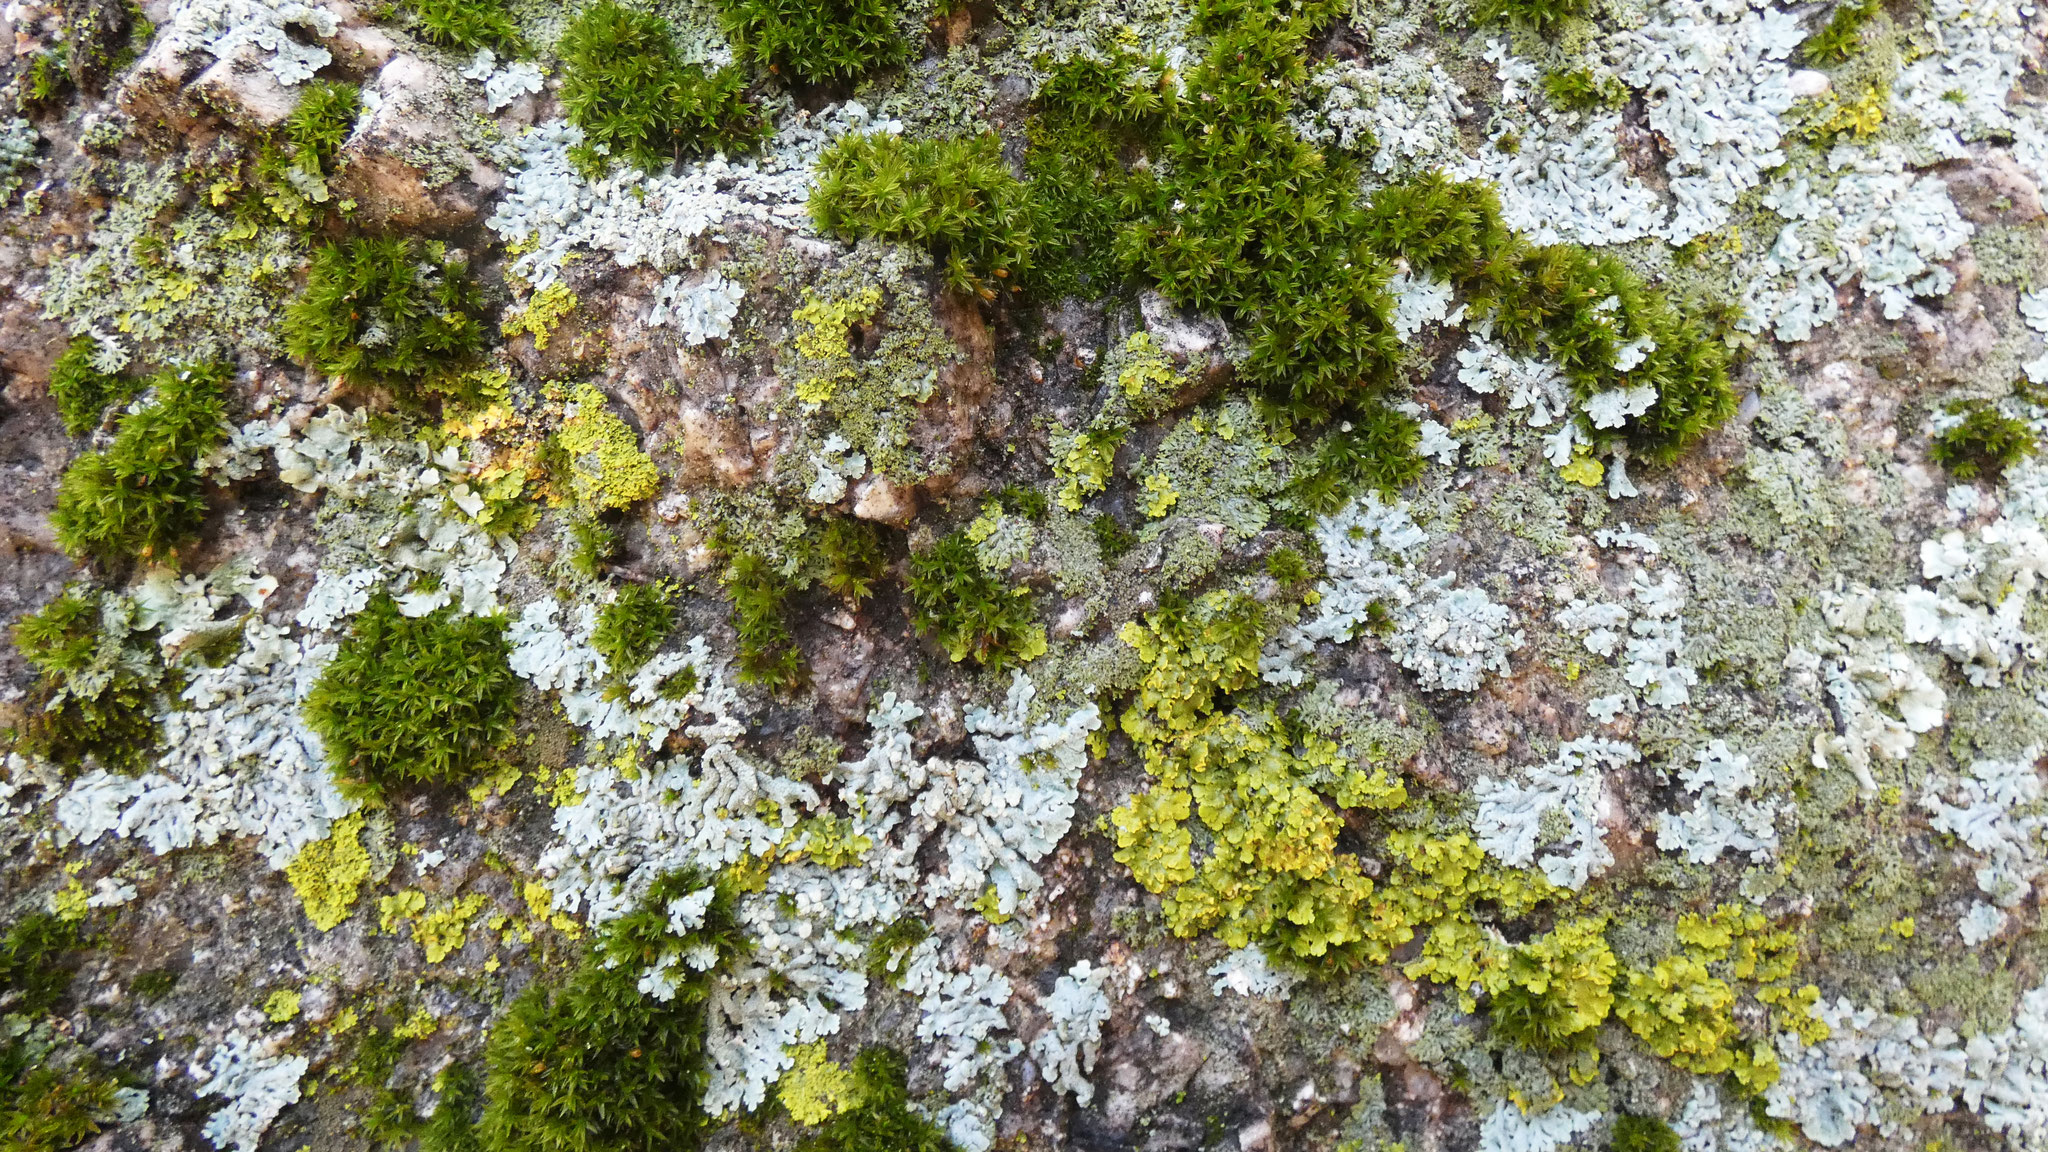 Lichens and moss on granite